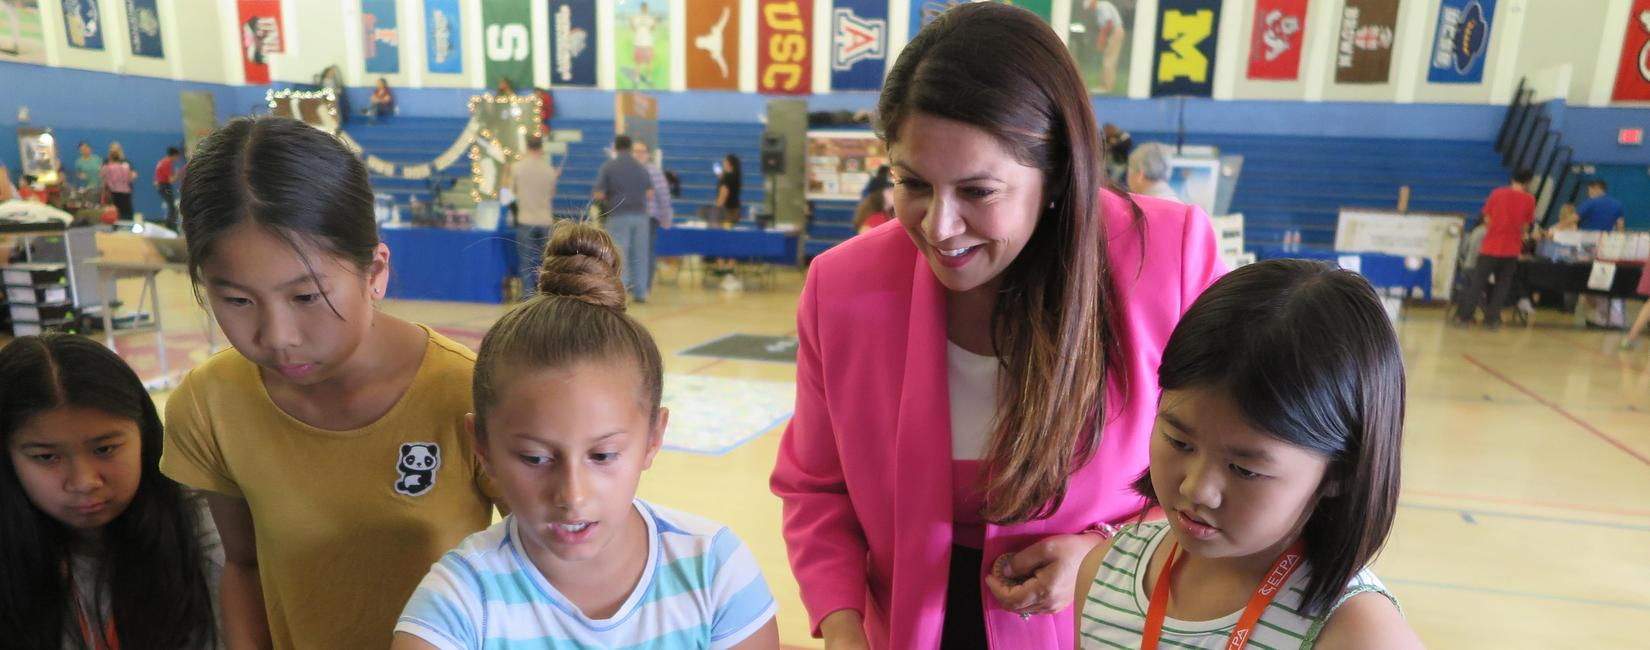 EMCSD Superintendent, Dr. Maribel Garcia interacting with students (photo from 2019)